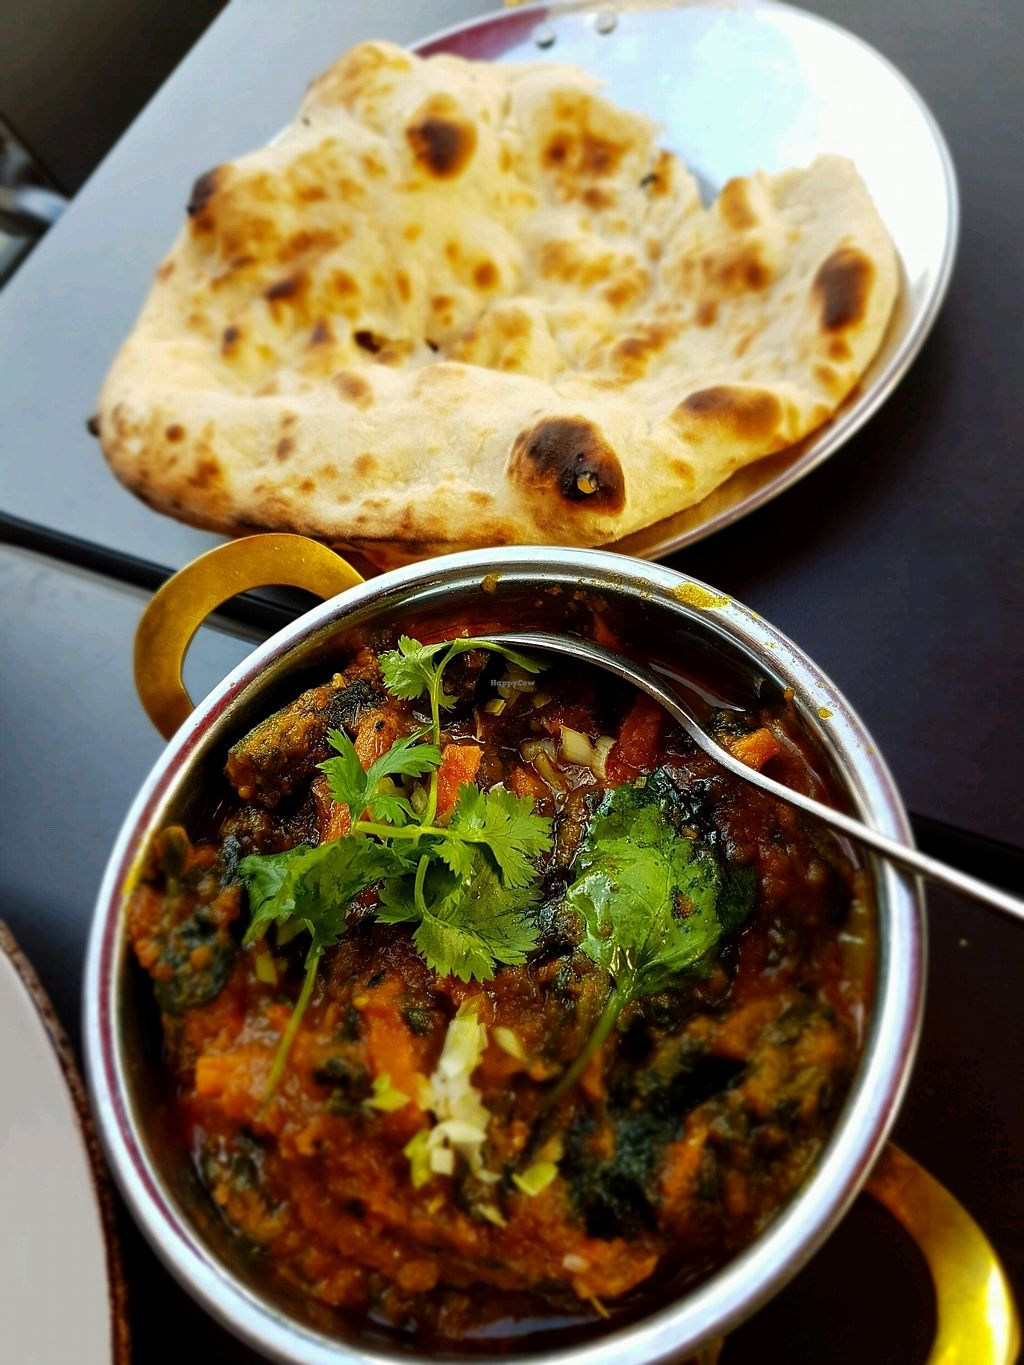 """Photo of Masala Masala  by <a href=""""/members/profile/Rezlajo"""">Rezlajo</a> <br/>Main <br/> December 28, 2017  - <a href='/contact/abuse/image/89960/339956'>Report</a>"""